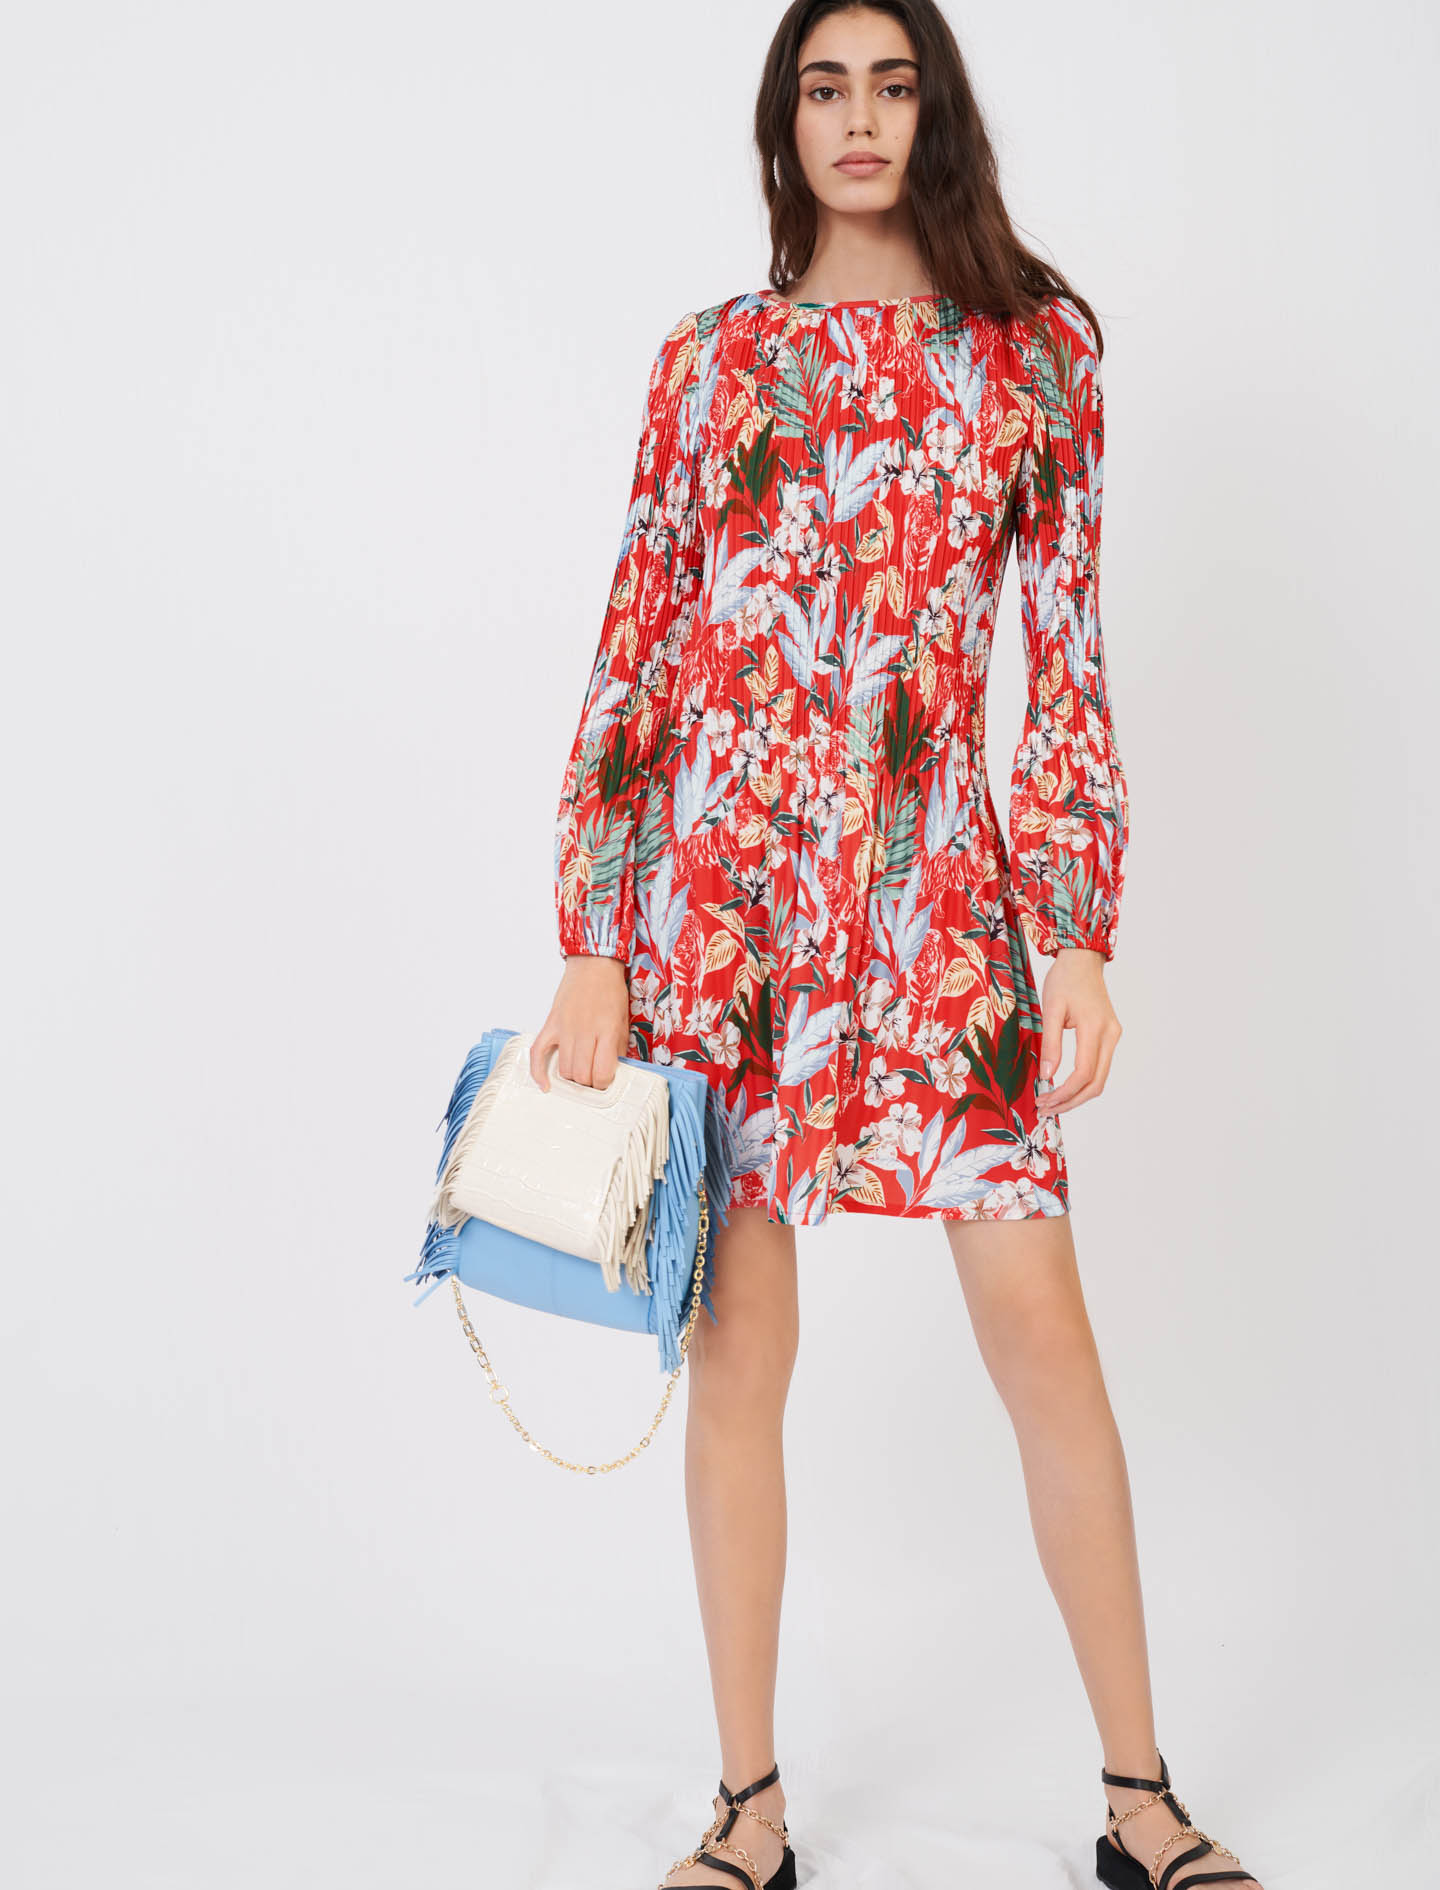 All-over pleat and printed dress - Multiclr